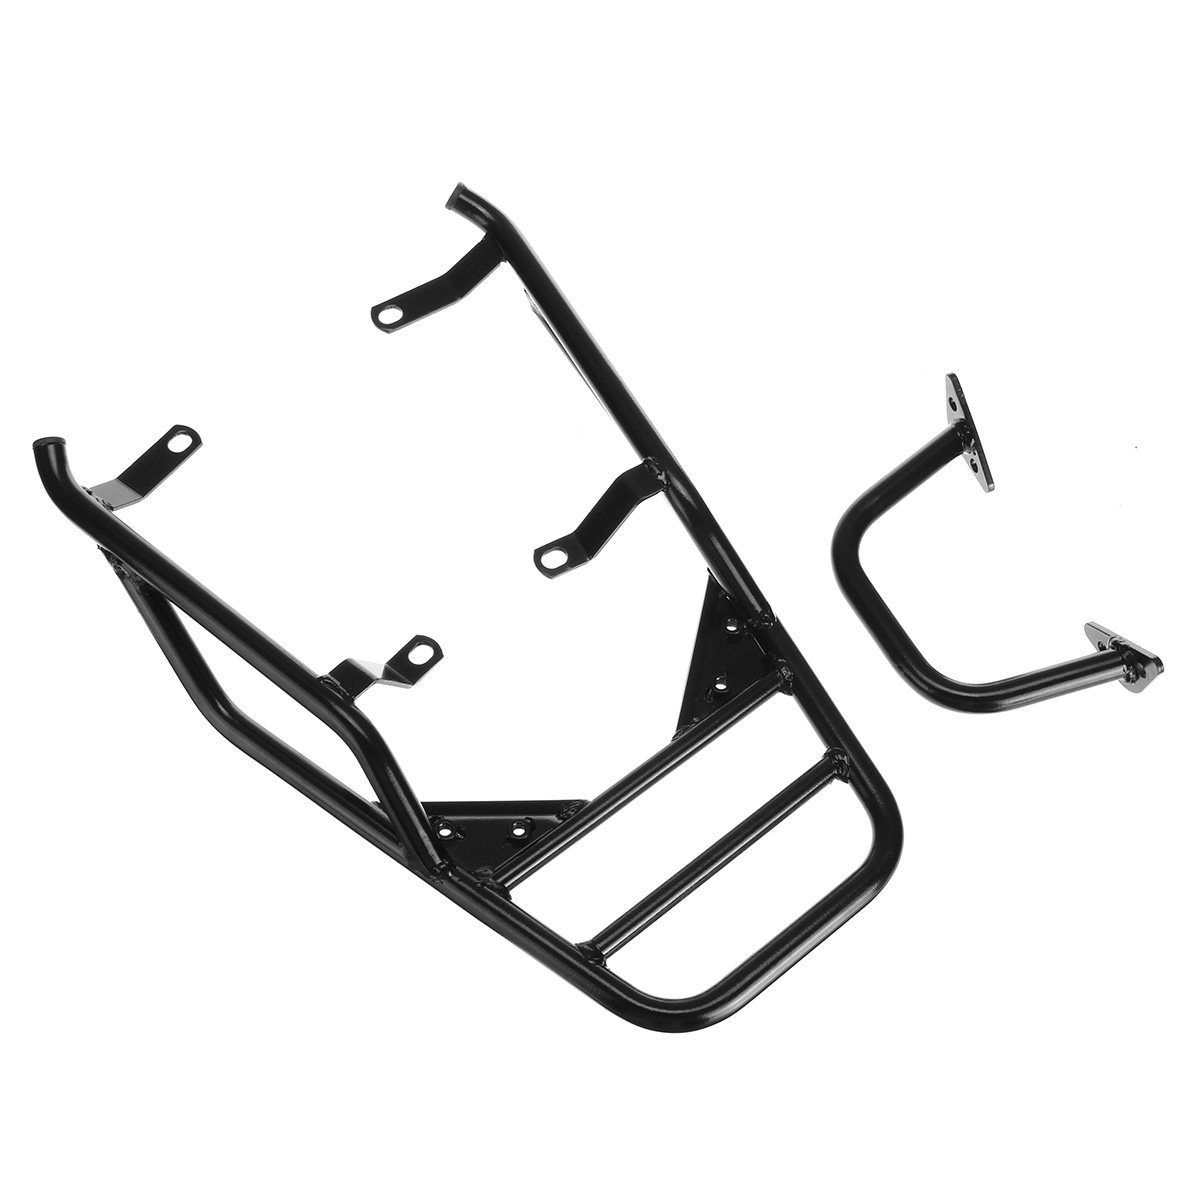 New Rear Luggage Rack with Passenger Grab Handlebar For